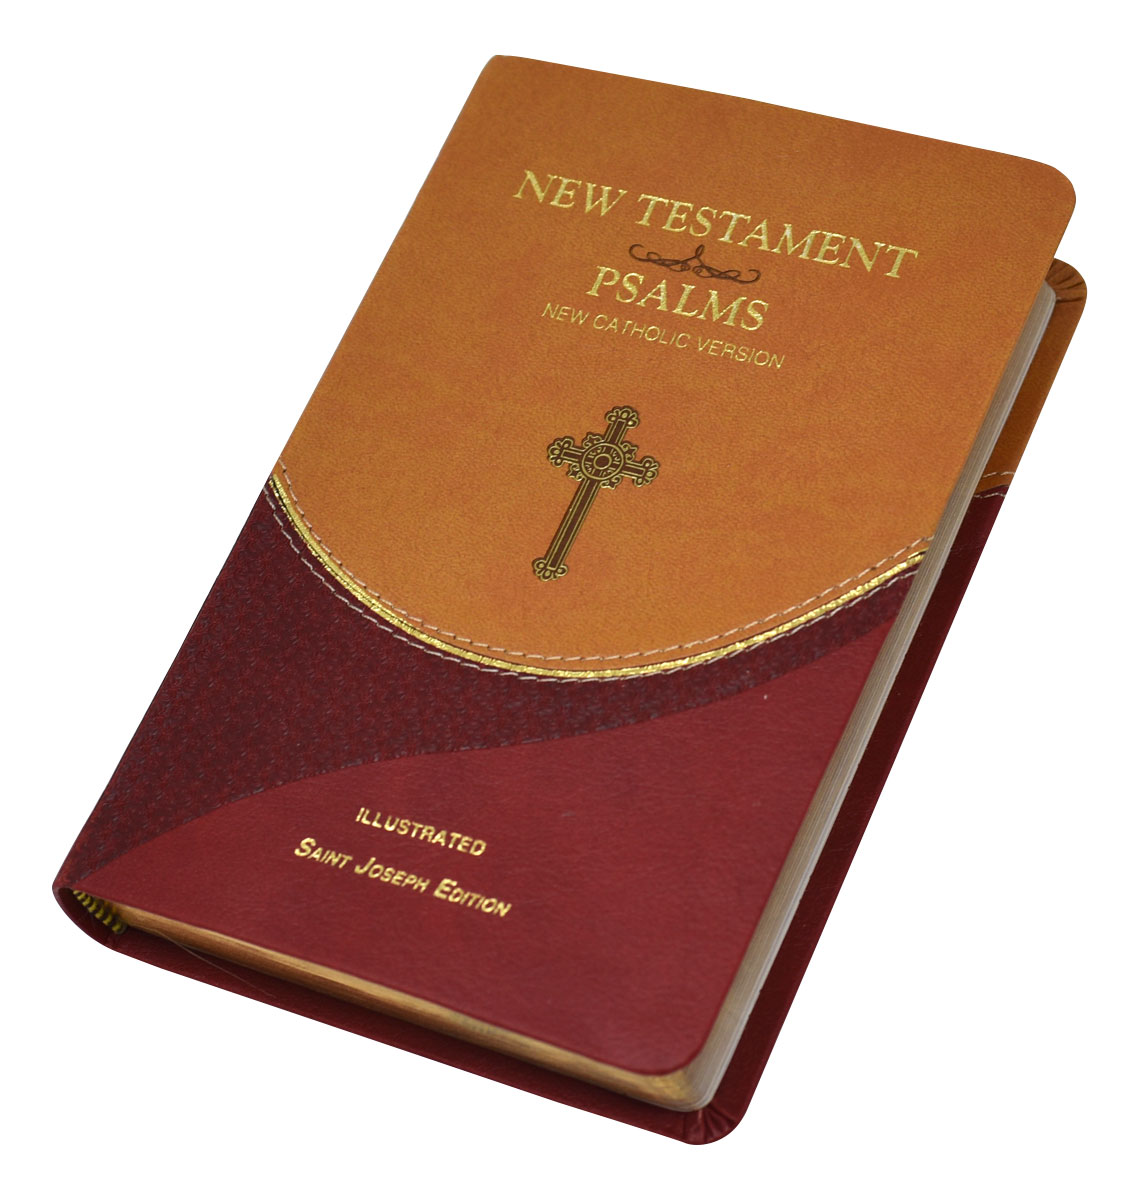 St. Joseph New Catholic Version New Testament and Psalms Brown/Burgundy Dura-Lux 647/19BN